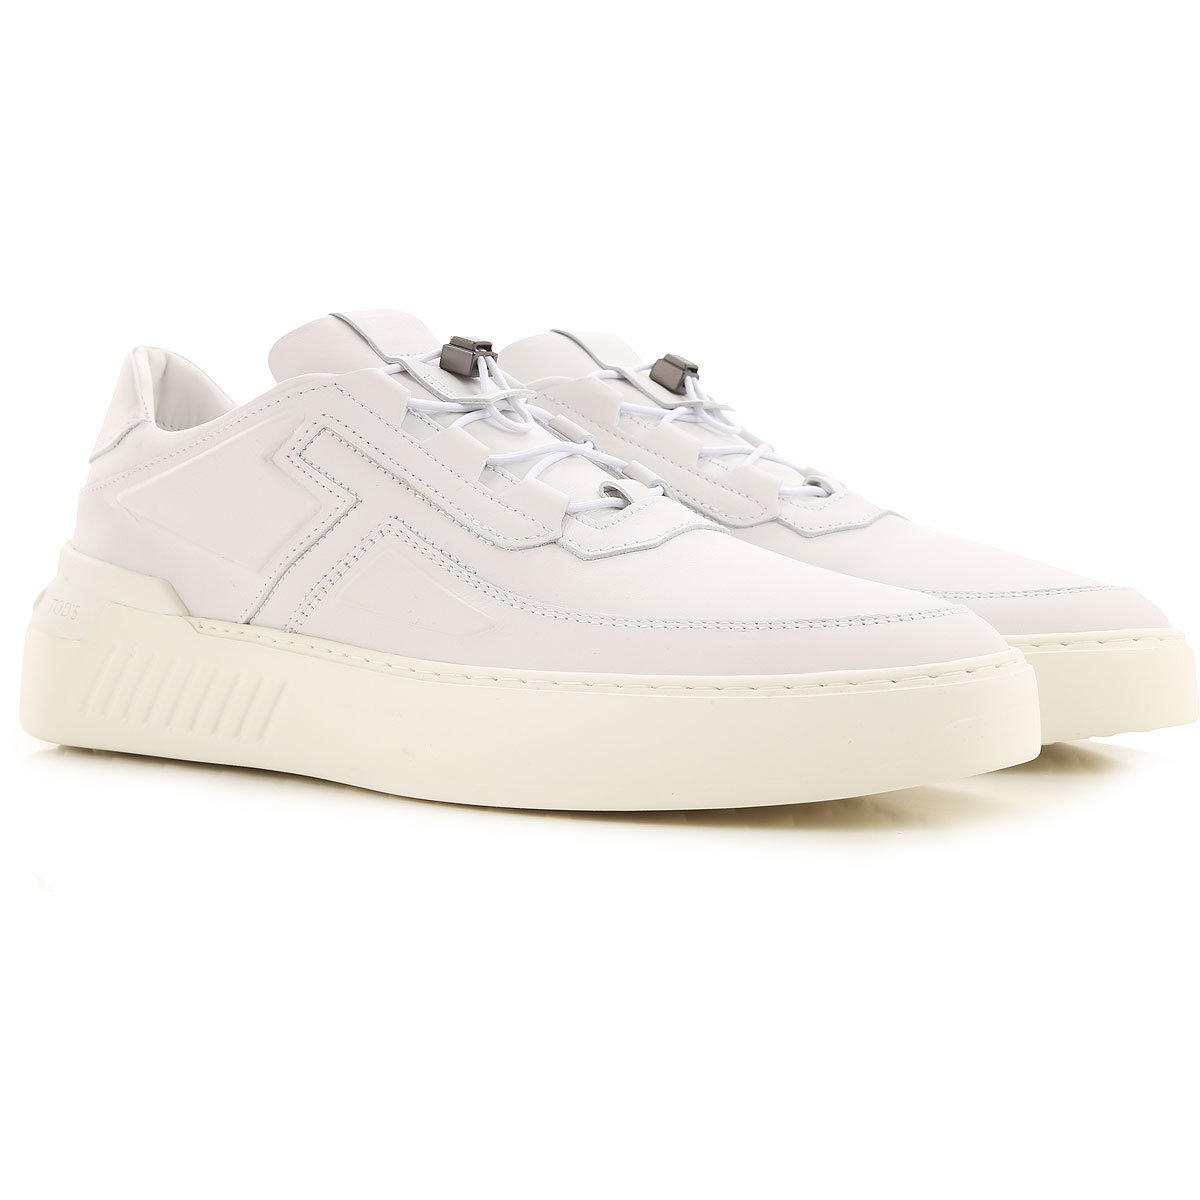 Tods Sneakers for Men, White, Leather, 2021, 10 10.5 7 8.5 from Tods